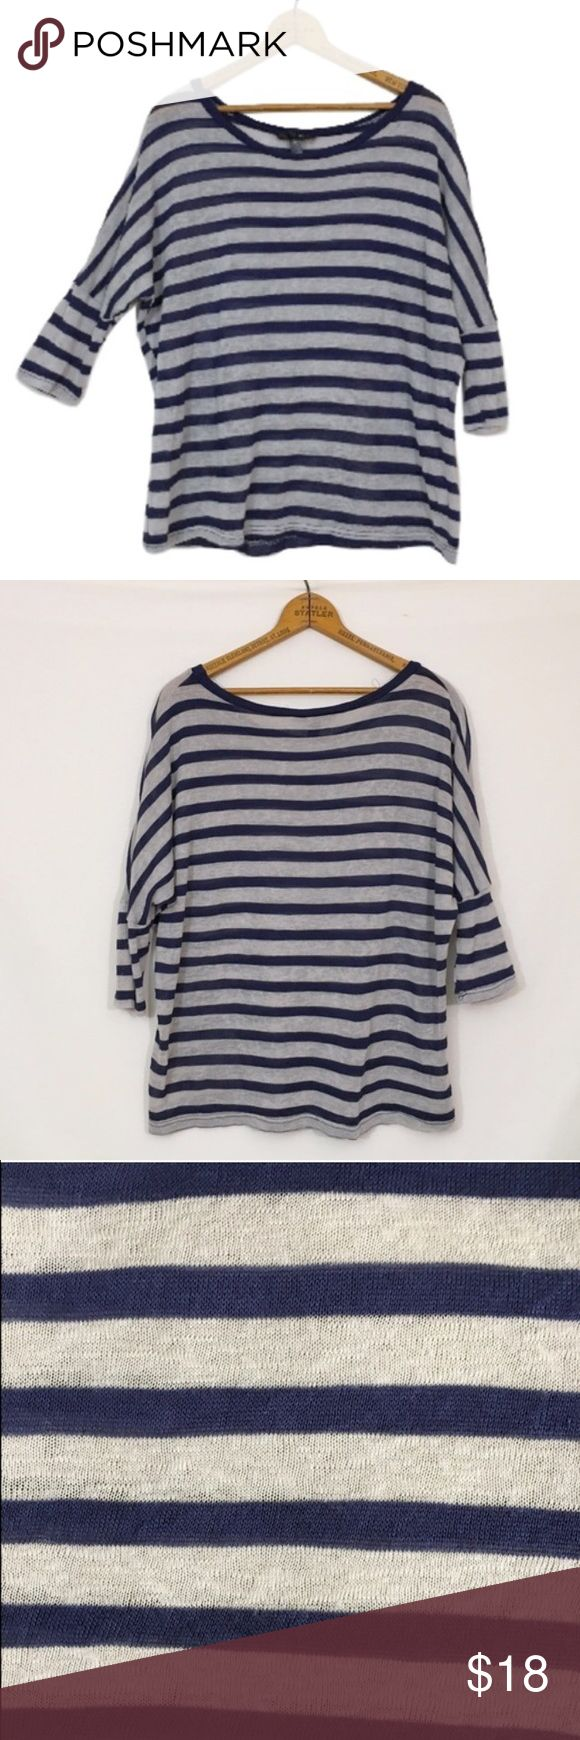 AQUA by Bloomingdales striped slouchy body top L minimal all over wash wear is present when the fabric is closely examined. Closeups show this best. Otherwise , Excellent condition! Slight sheerness and will require appropriate undergarments. Polyester, rayon.  bust 48 length 24.5 Aqua Tops Blouses